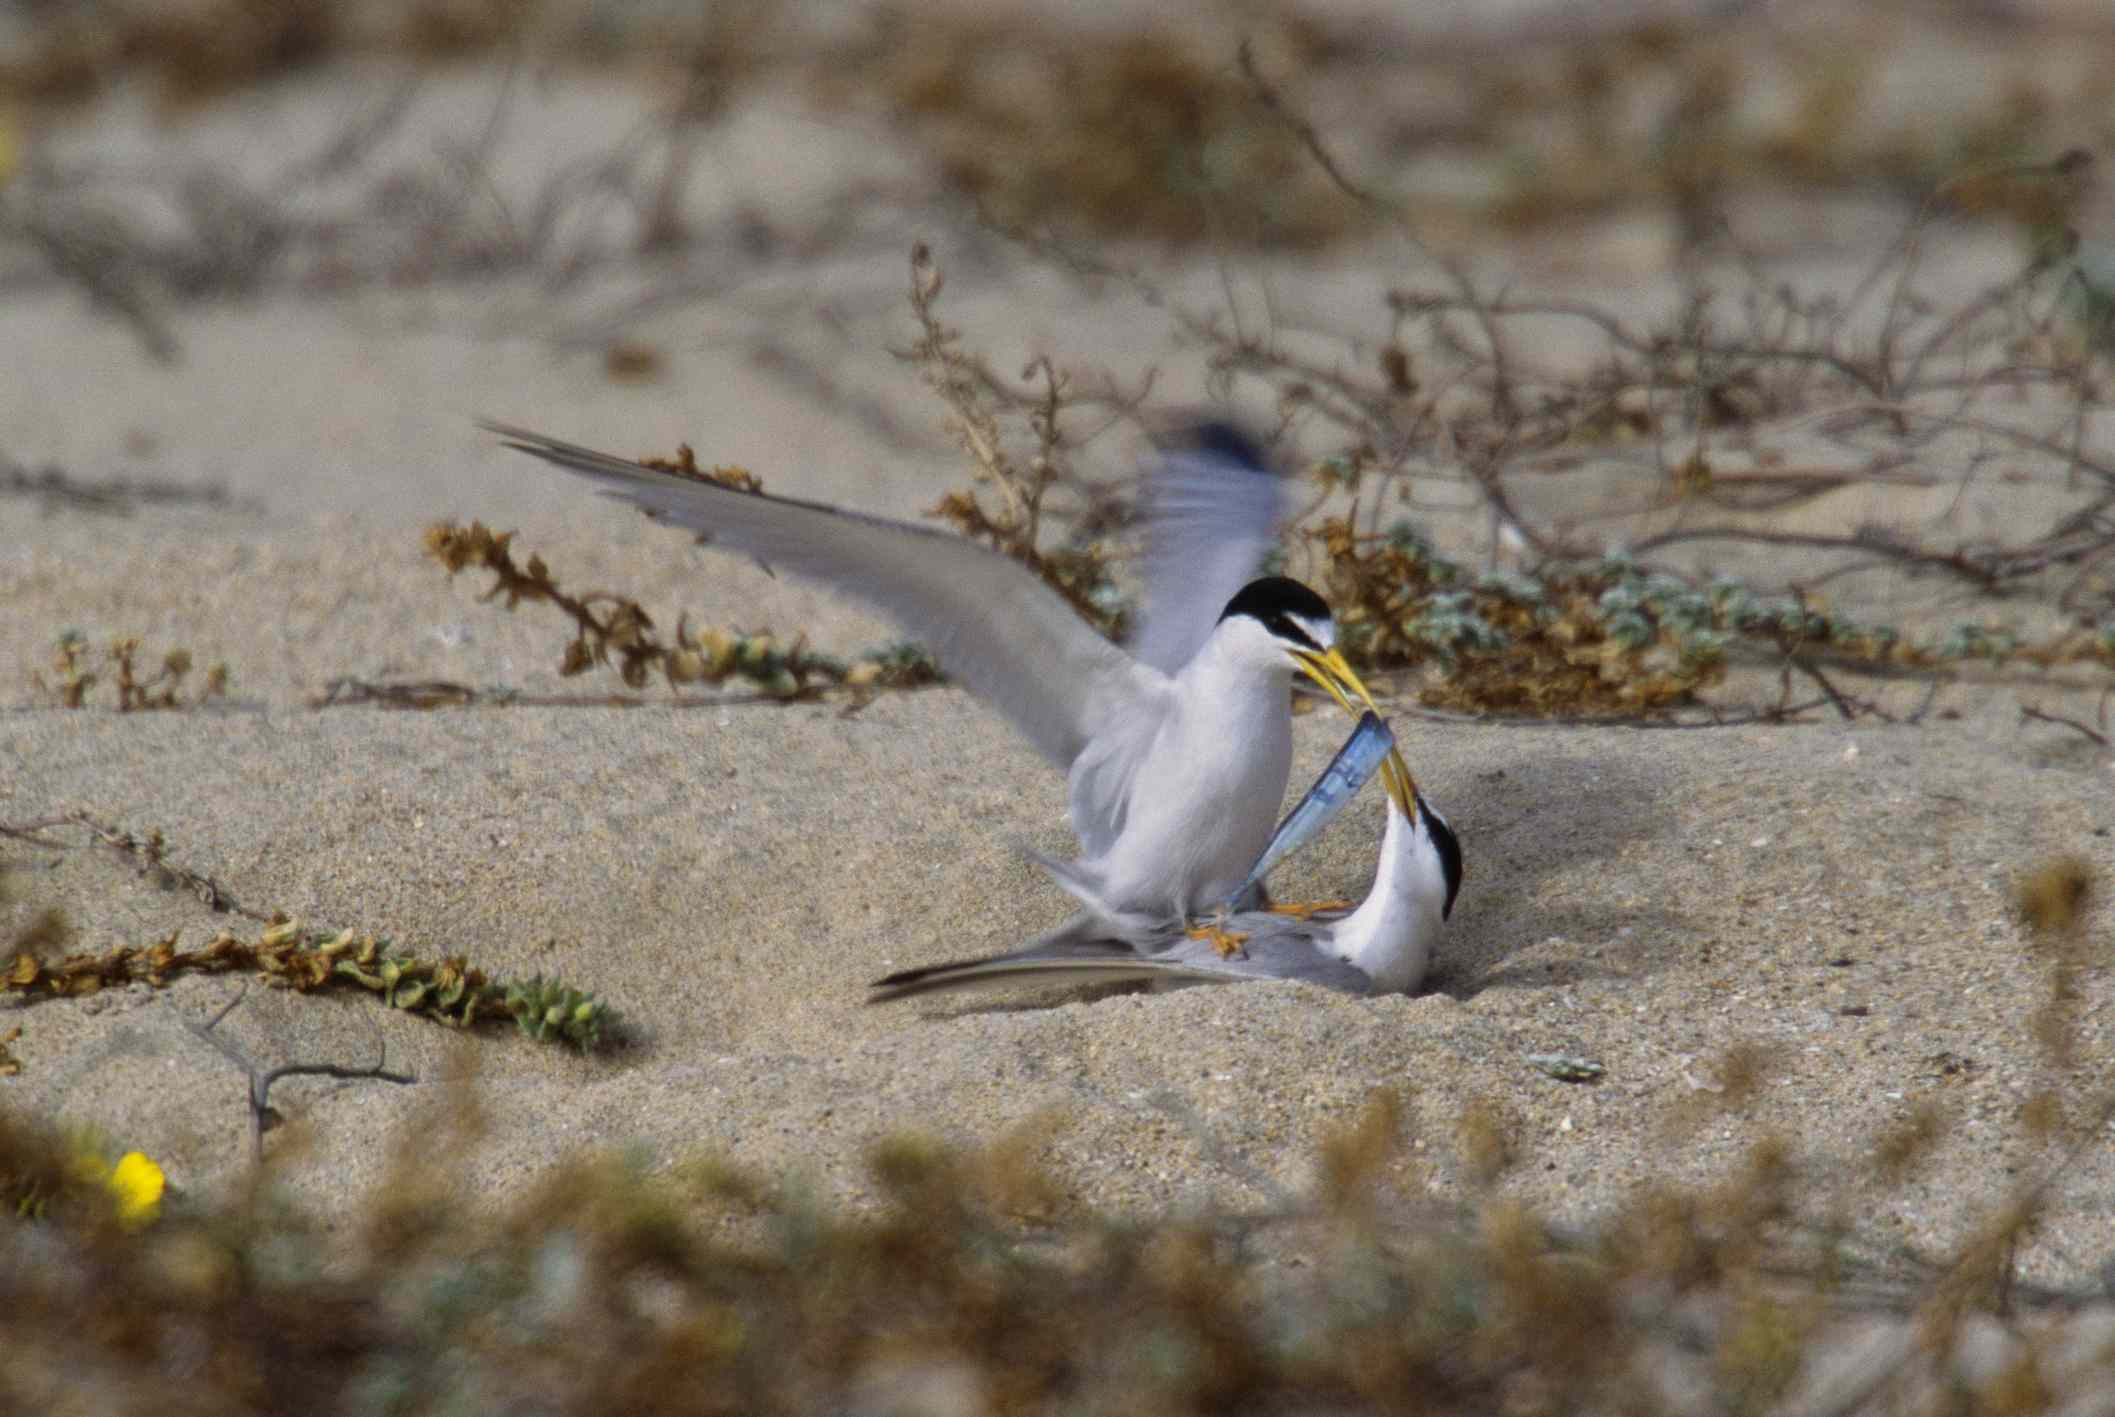 A California least tern offering fish to a mate on the beach.